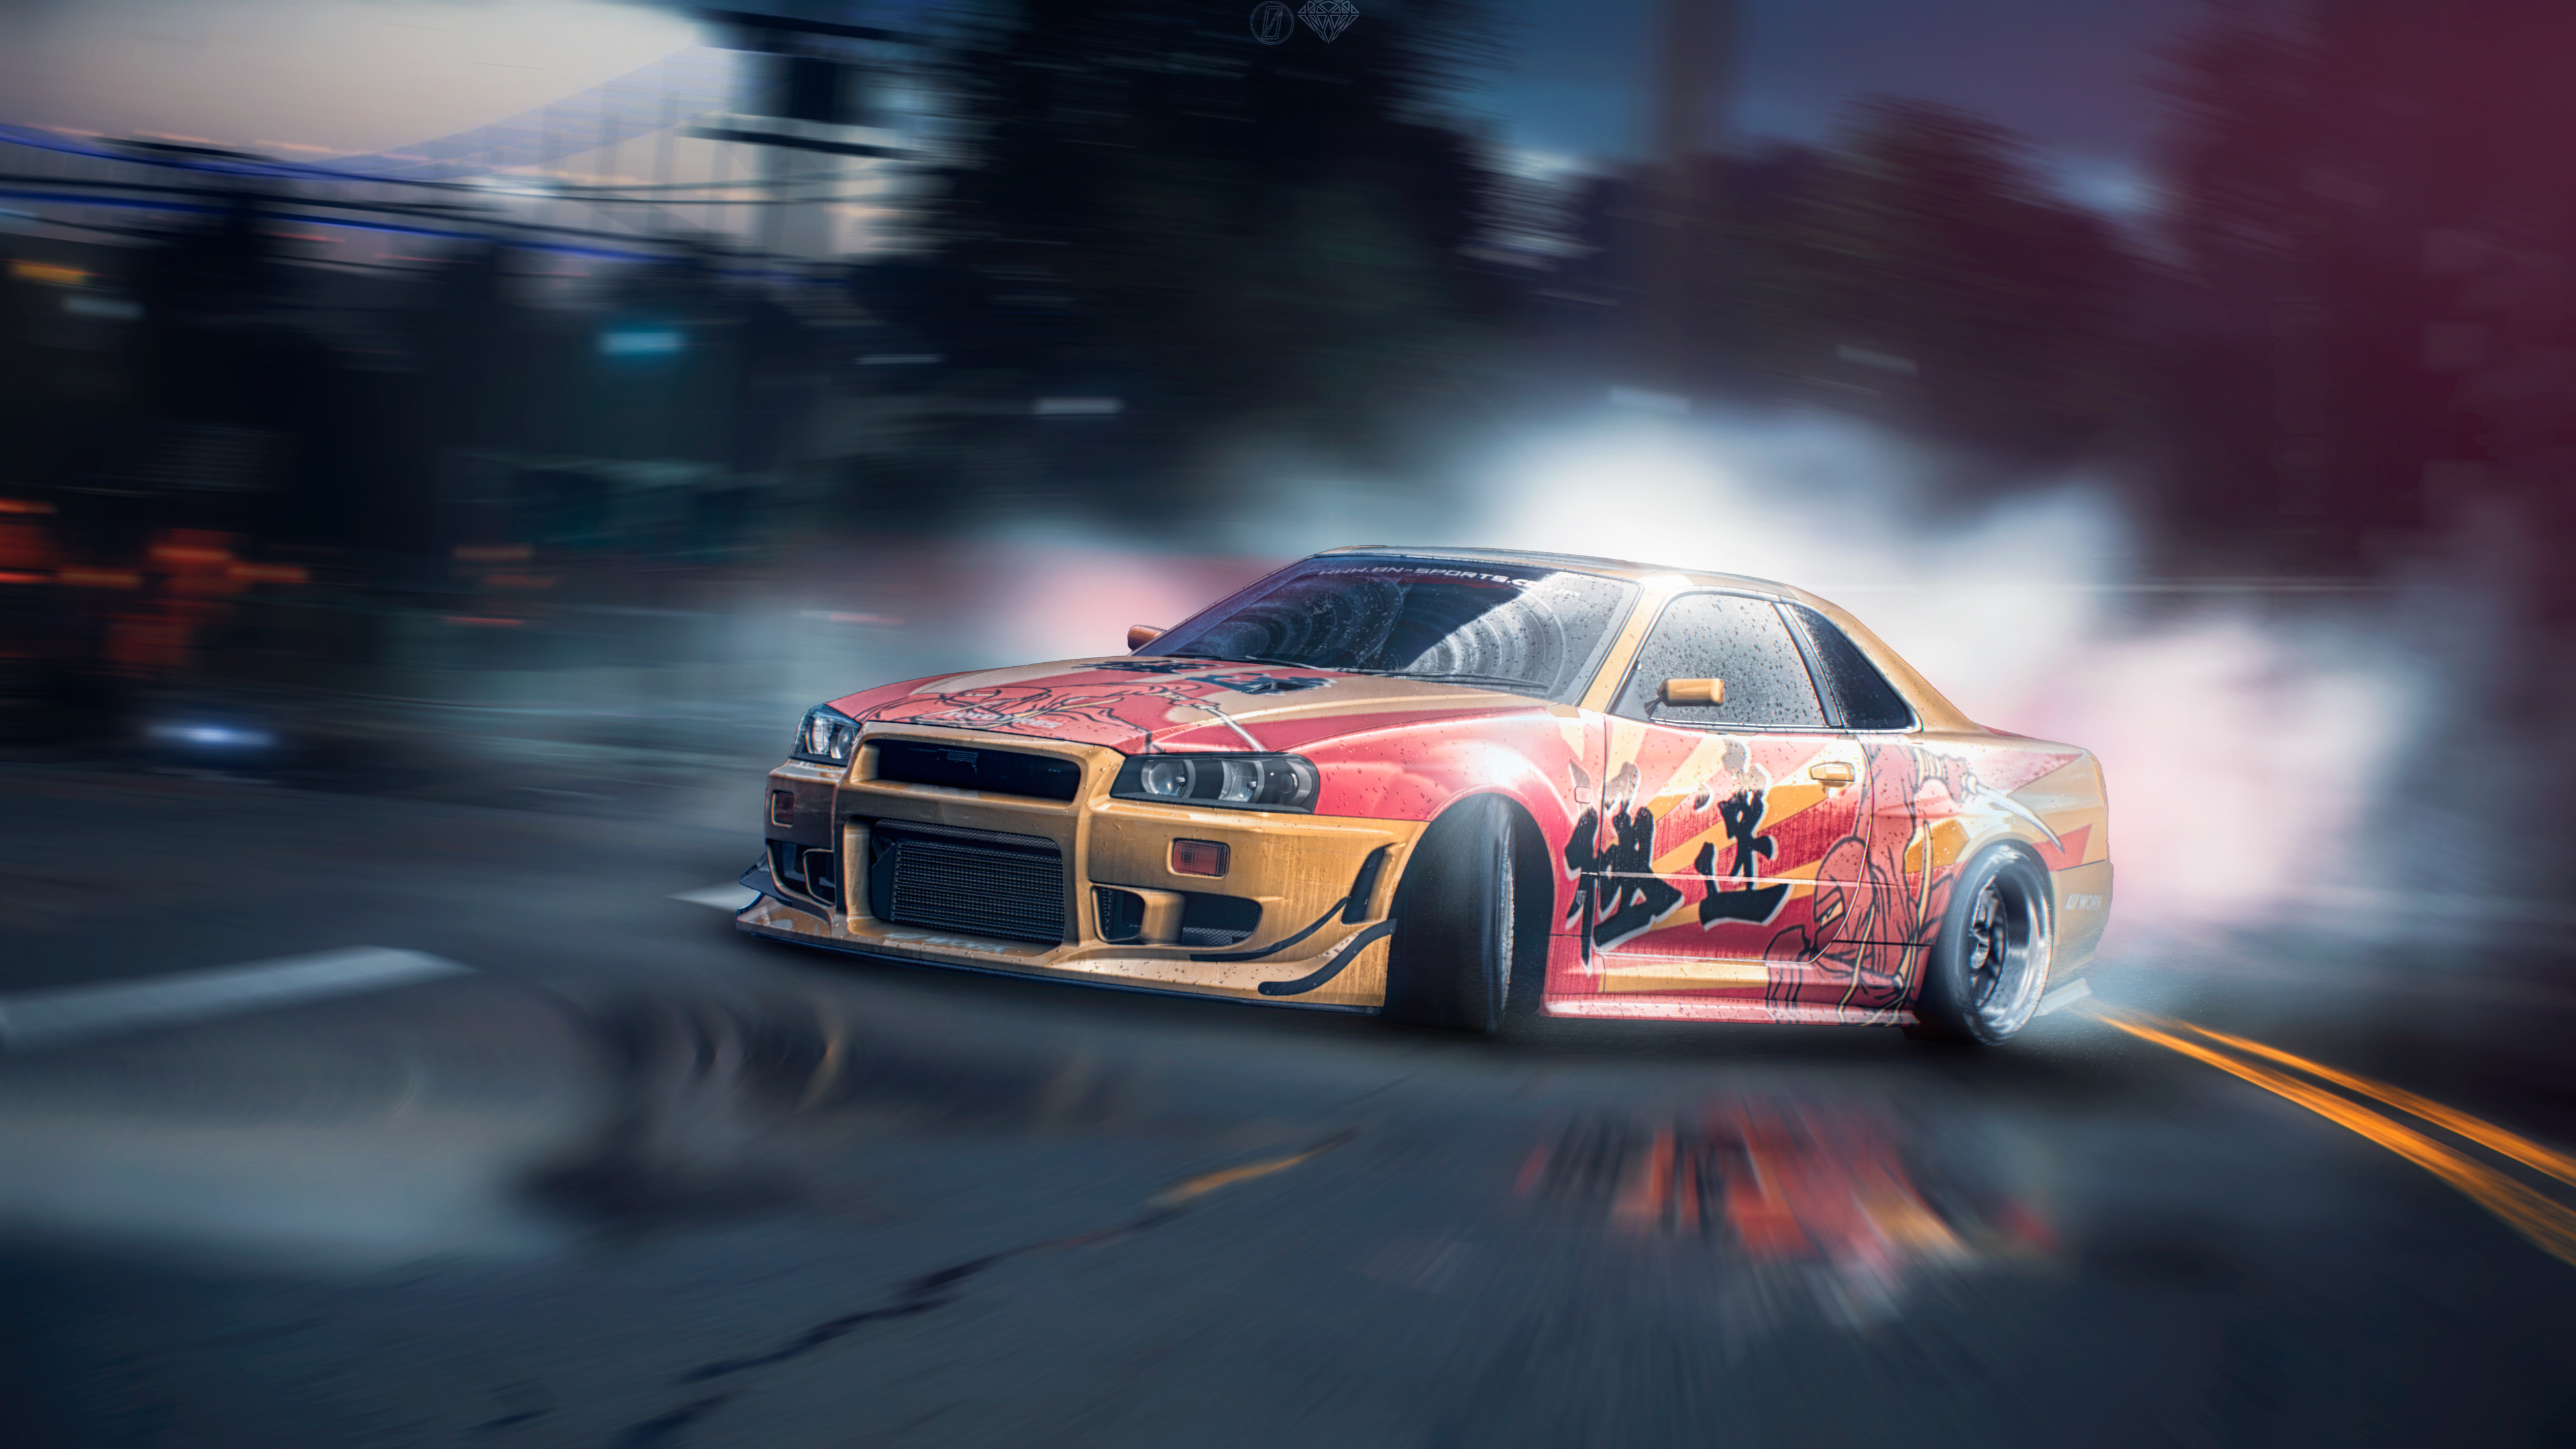 Nissan Skyline Gt R Need For Speed X Street Racing Syndicate 4k Hd Games 4k Wallpapers Images Backgrounds Photos And Pictures